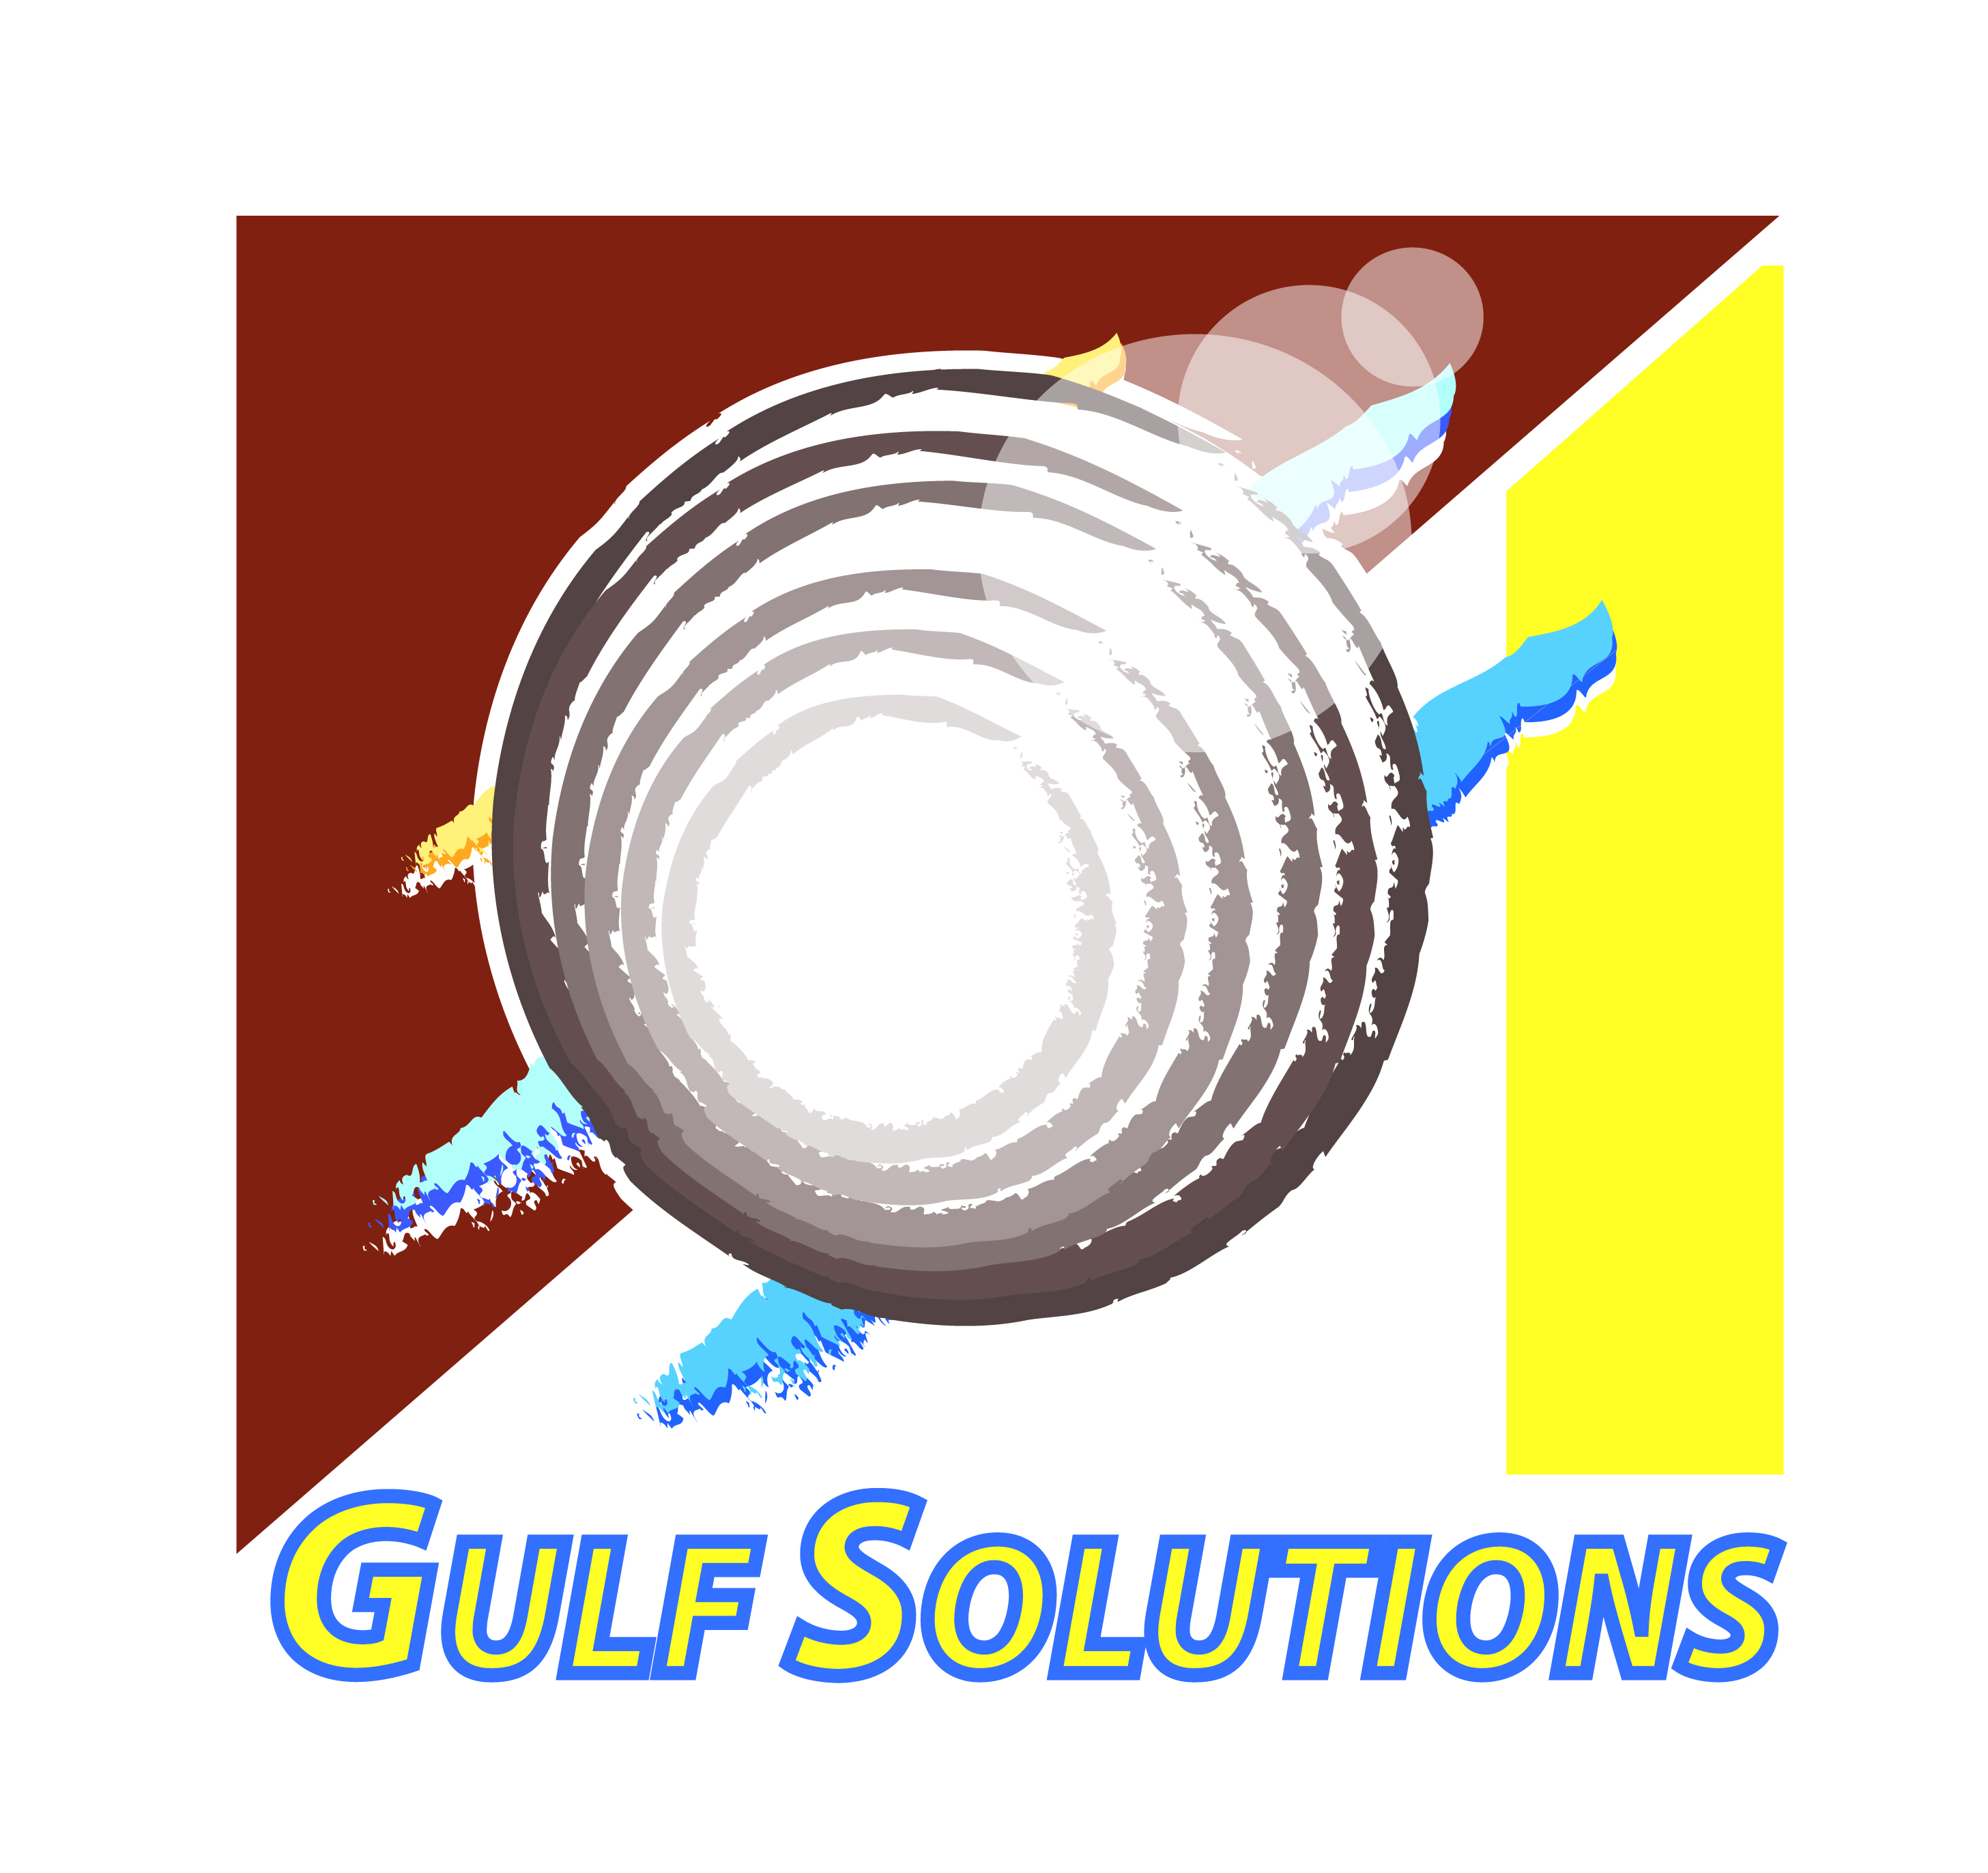 Logo Design by Piyush Sharma - Entry No. 10 in the Logo Design Contest New Logo Design for Gulf solutions company.